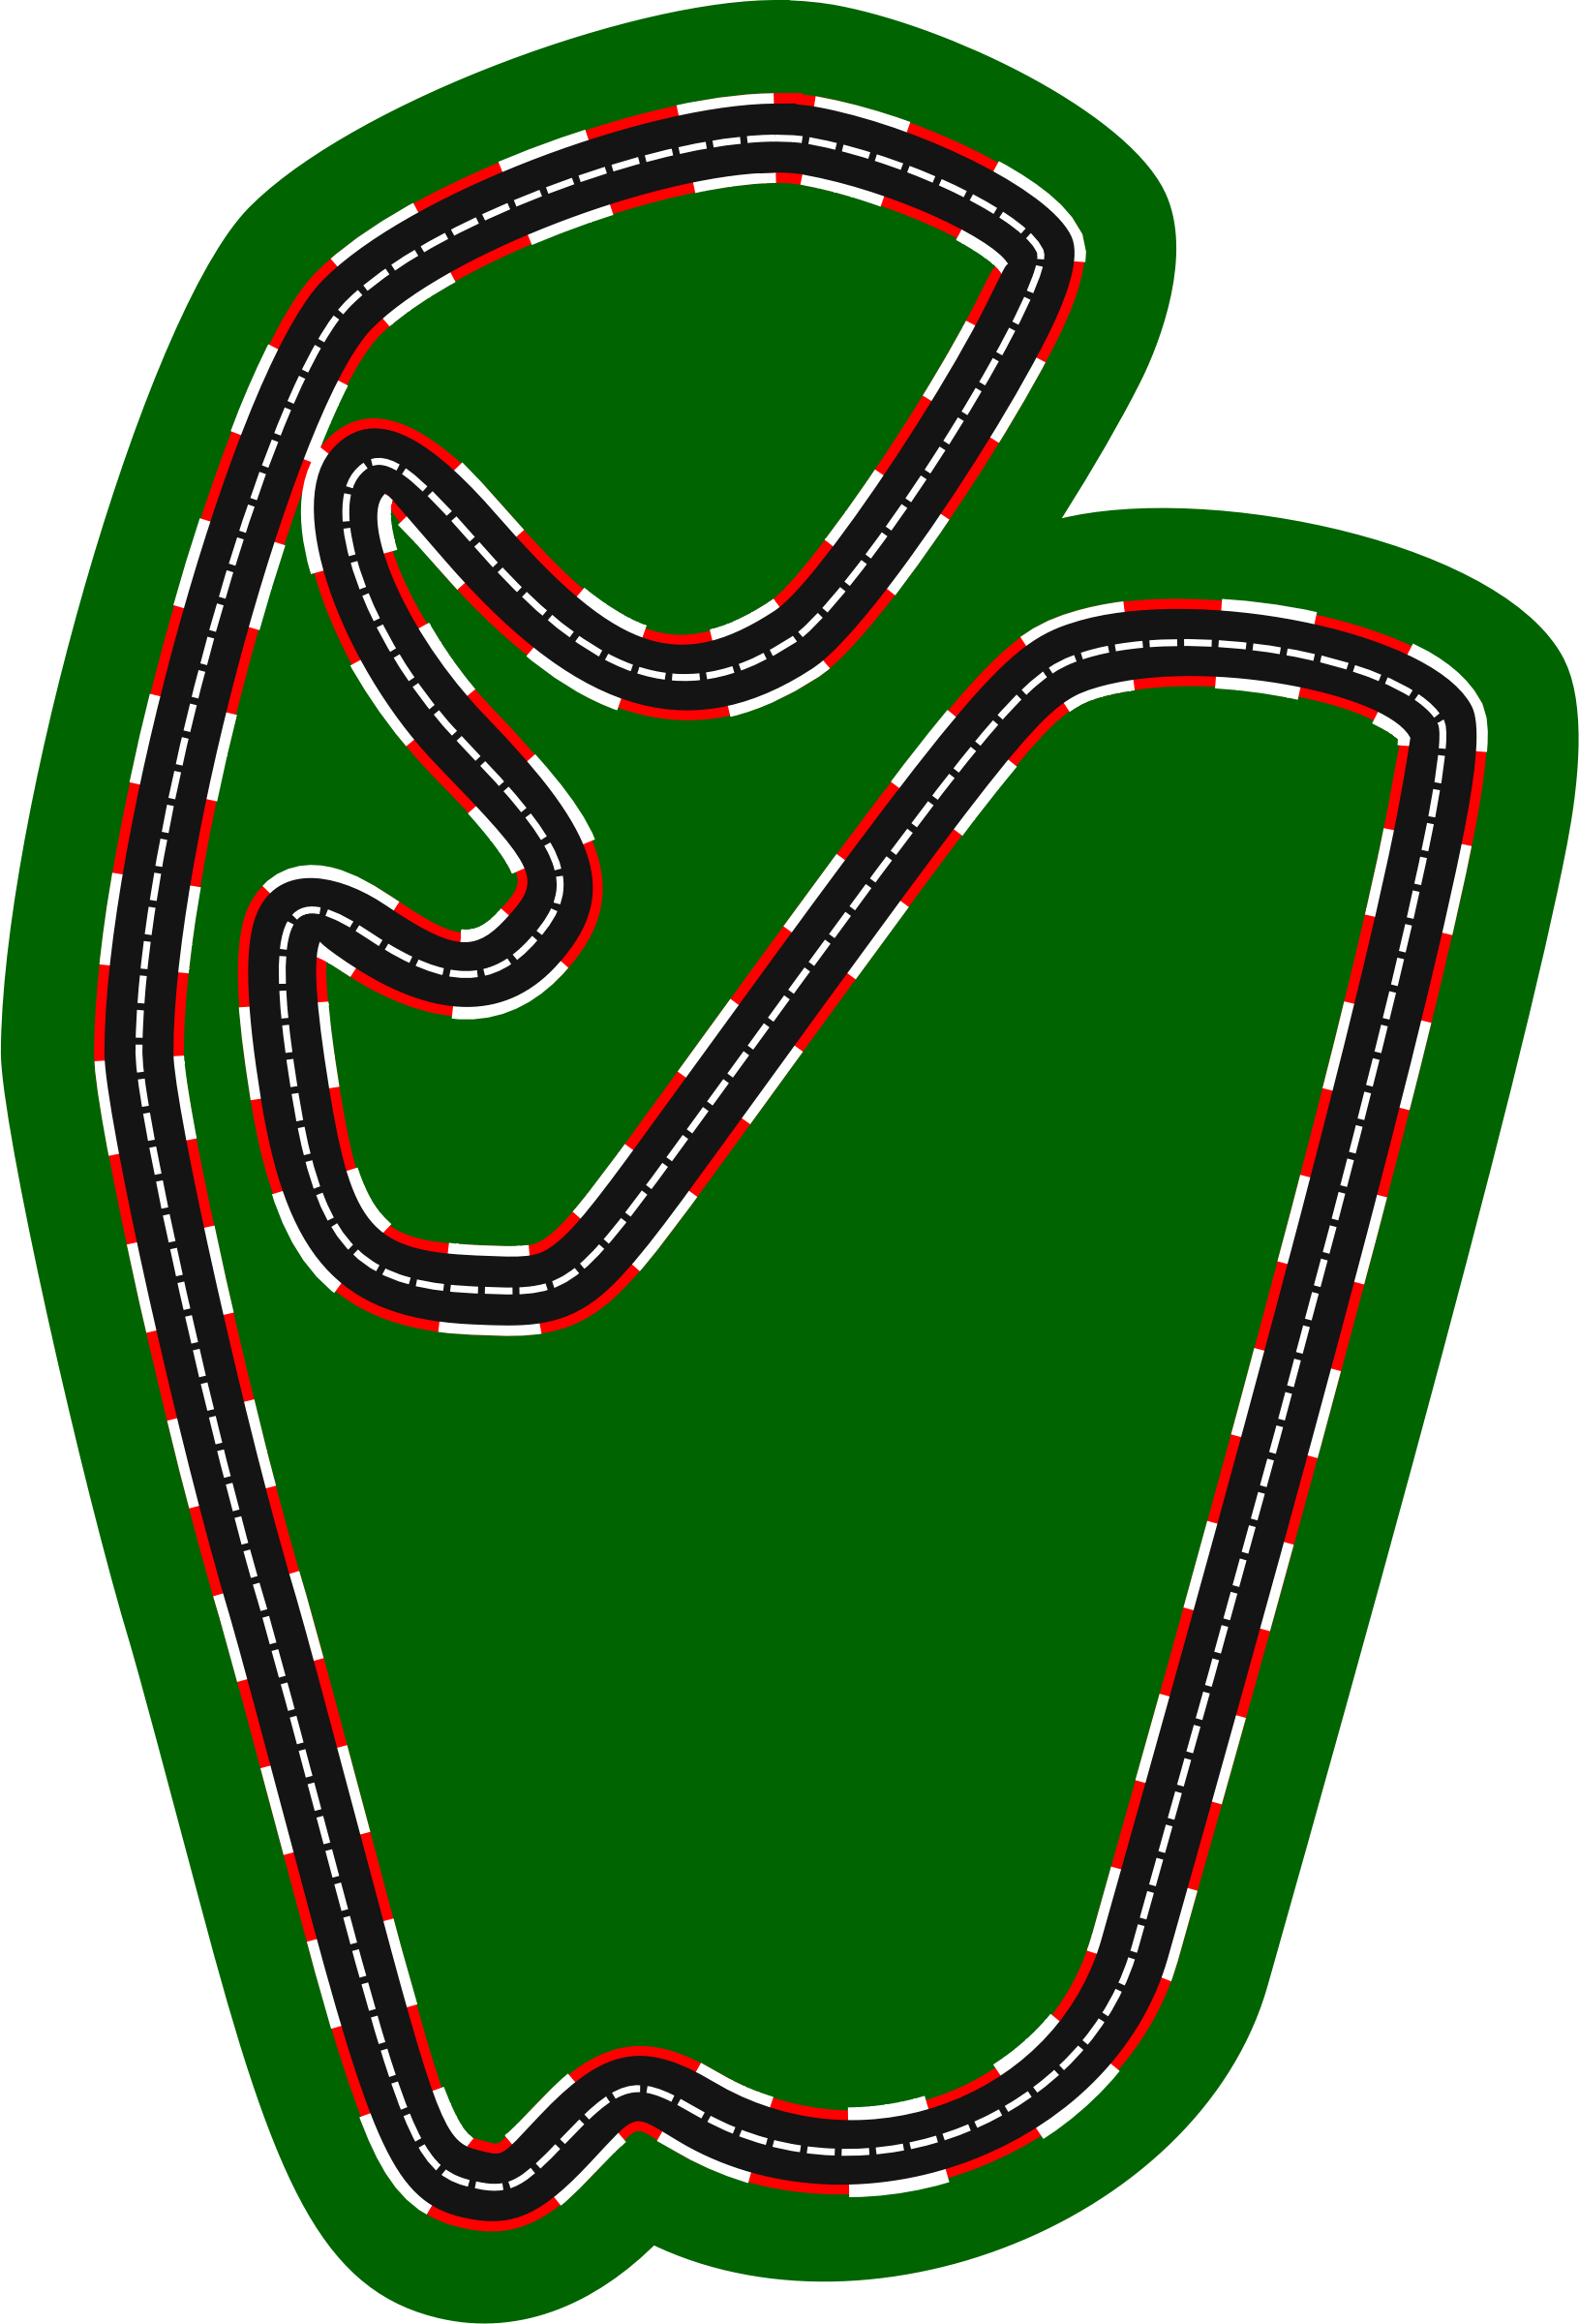 F1 circuits 2014-2018 - Autódromo José Carlos Pace (version 2) by Firkin